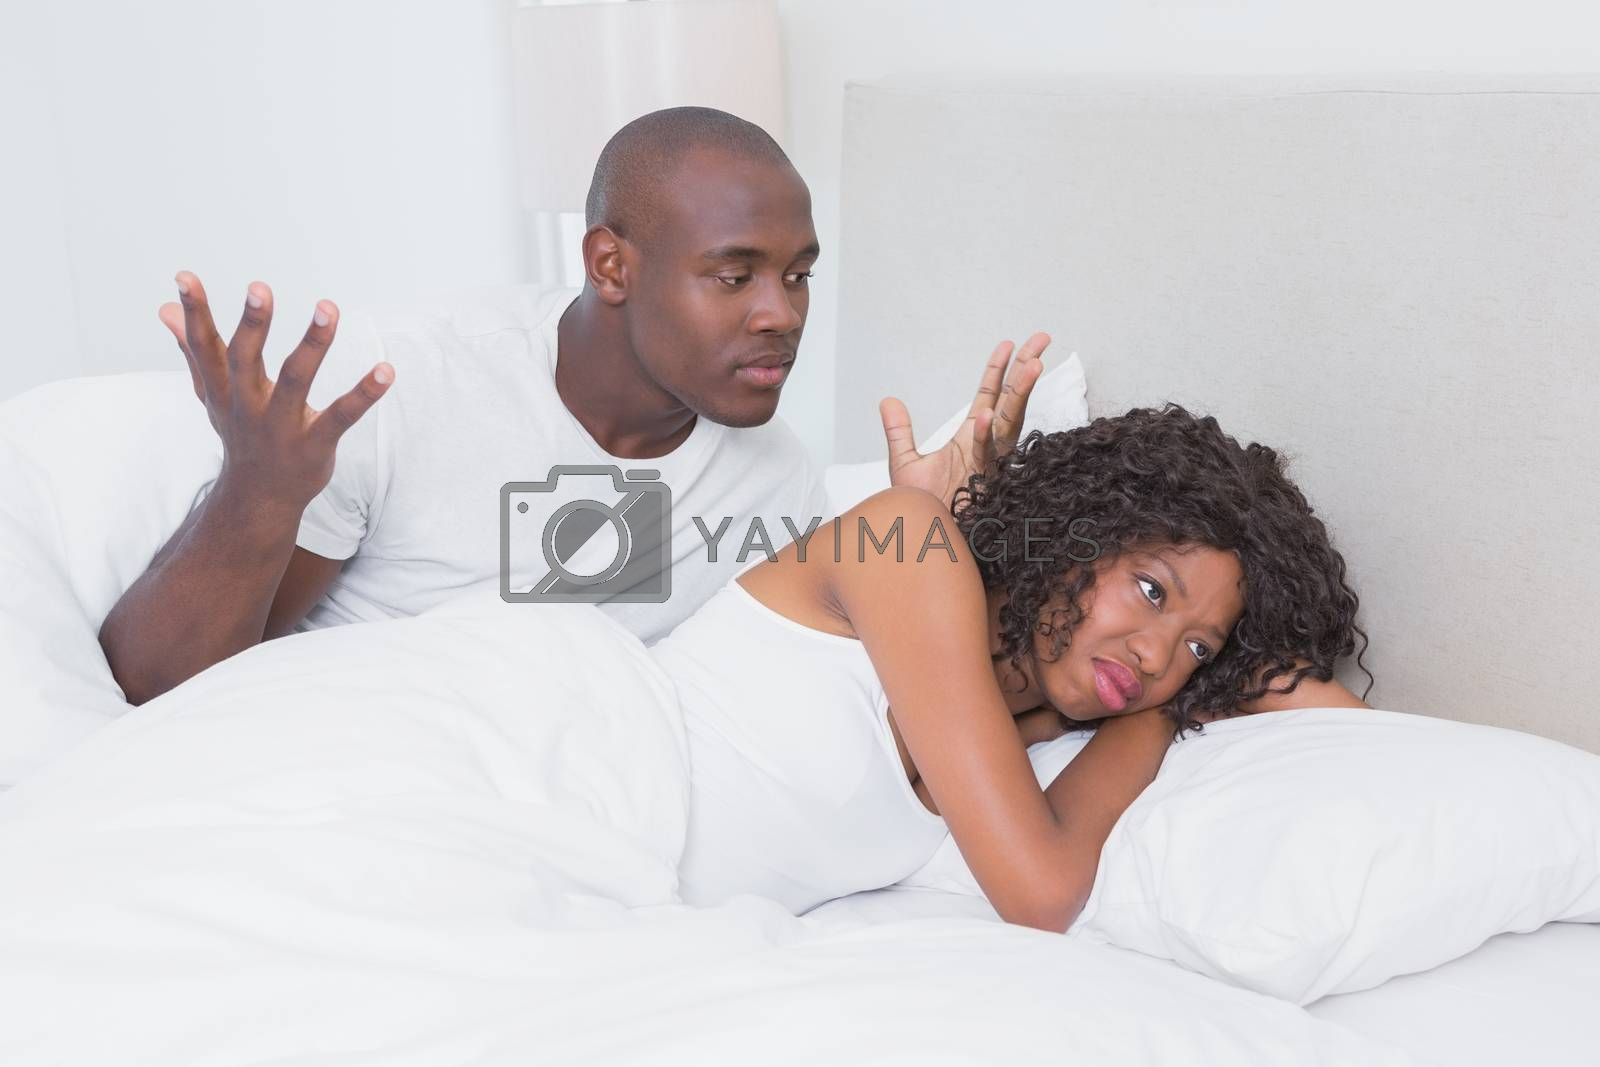 Royalty free image of Dispute between a couple in bed together by Wavebreakmedia